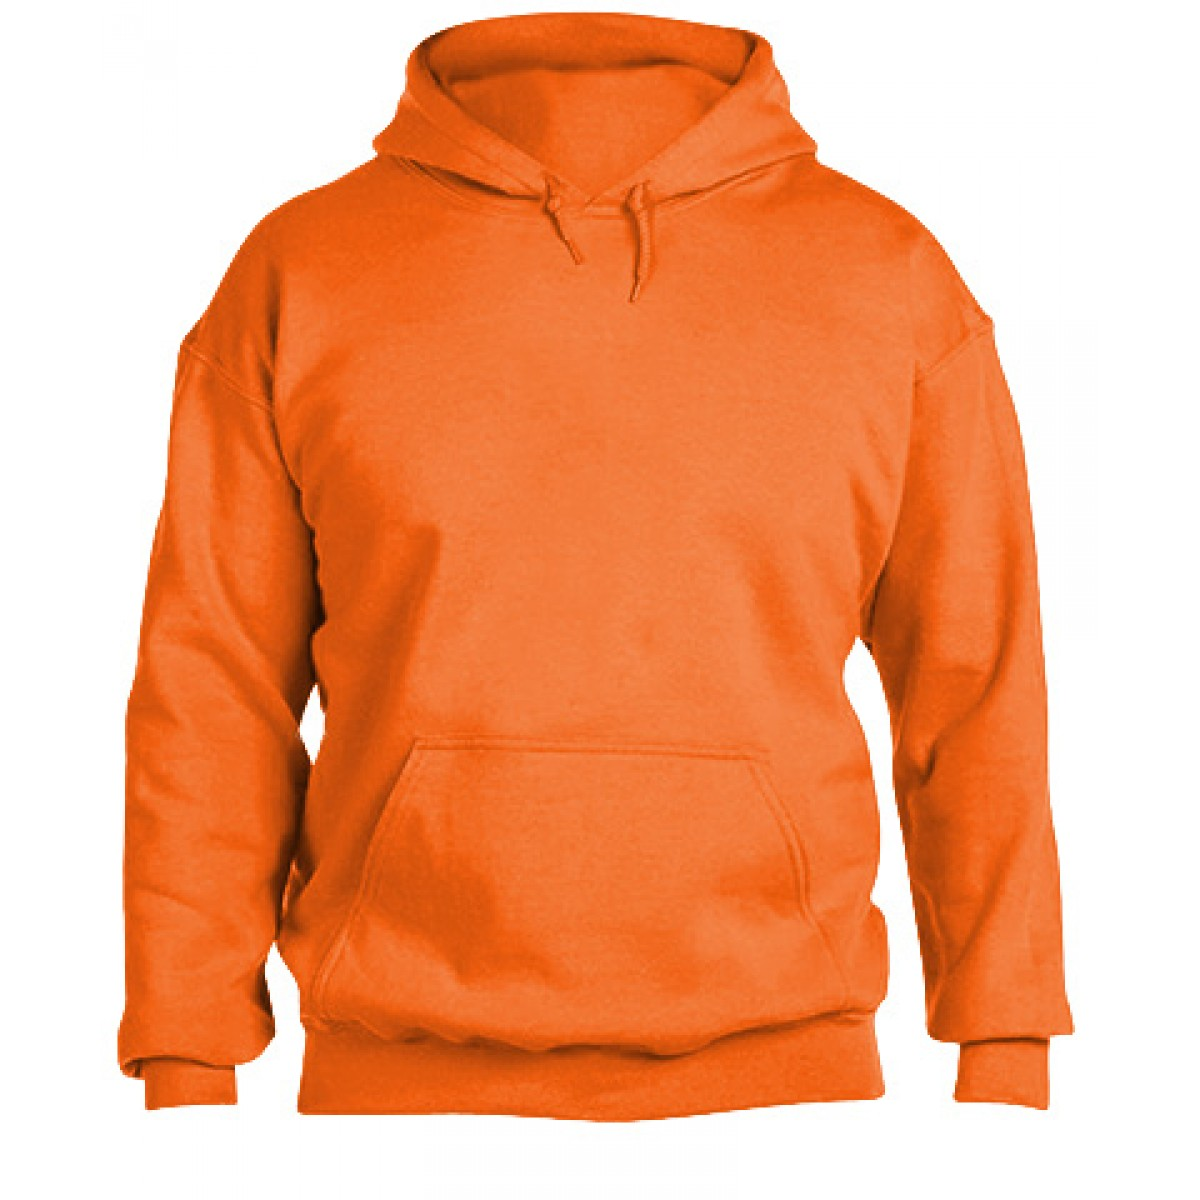 Hooded Sweatshirt 50/50 Heavy Blend -Safety Orange-L